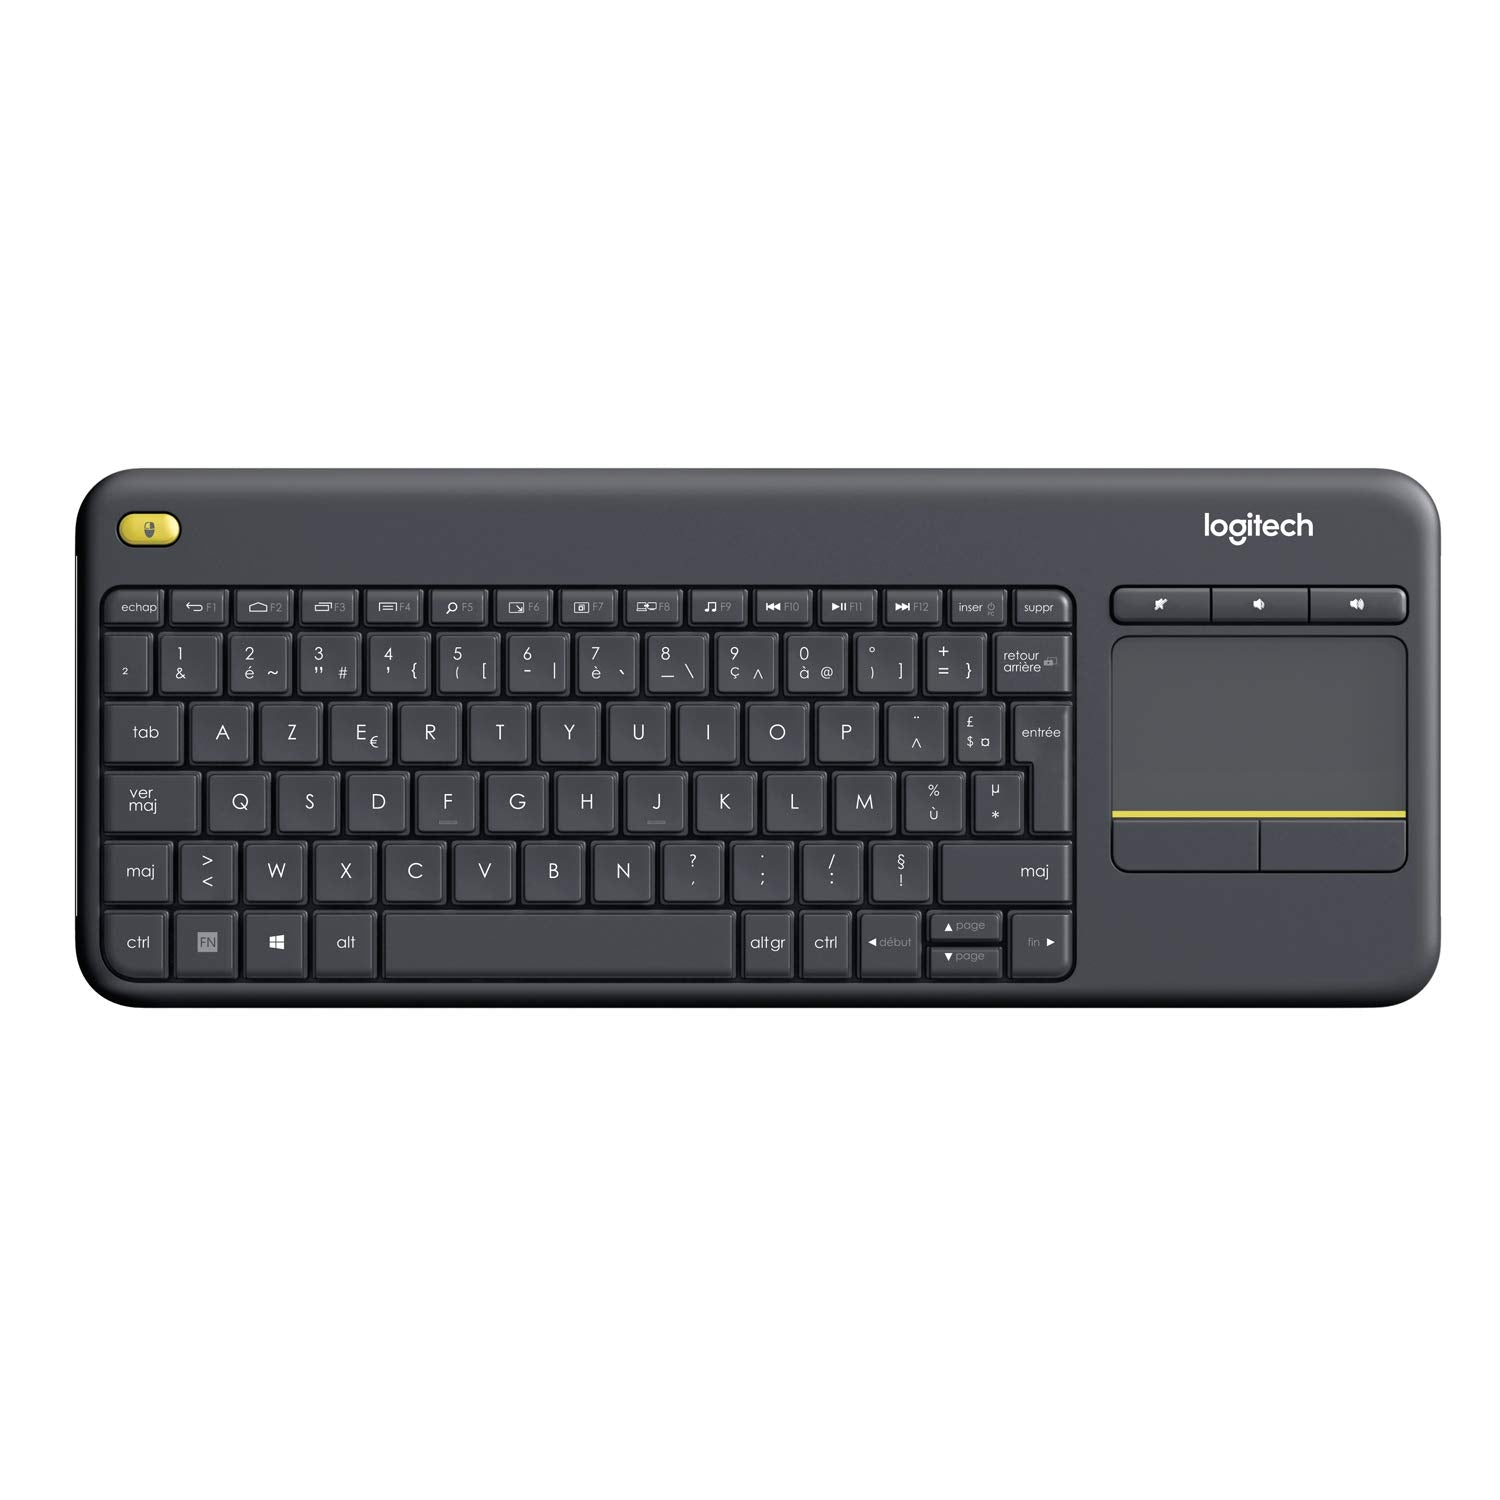 Logitech K400 Plus, Clavier sans Fil avec Pavé Tactile pour PC Connecté à TV, Touches Multimédia Personnalisables, Compatible avec Windows/Android/Portable/Tablette, Clavier Français AZERTY - Noir